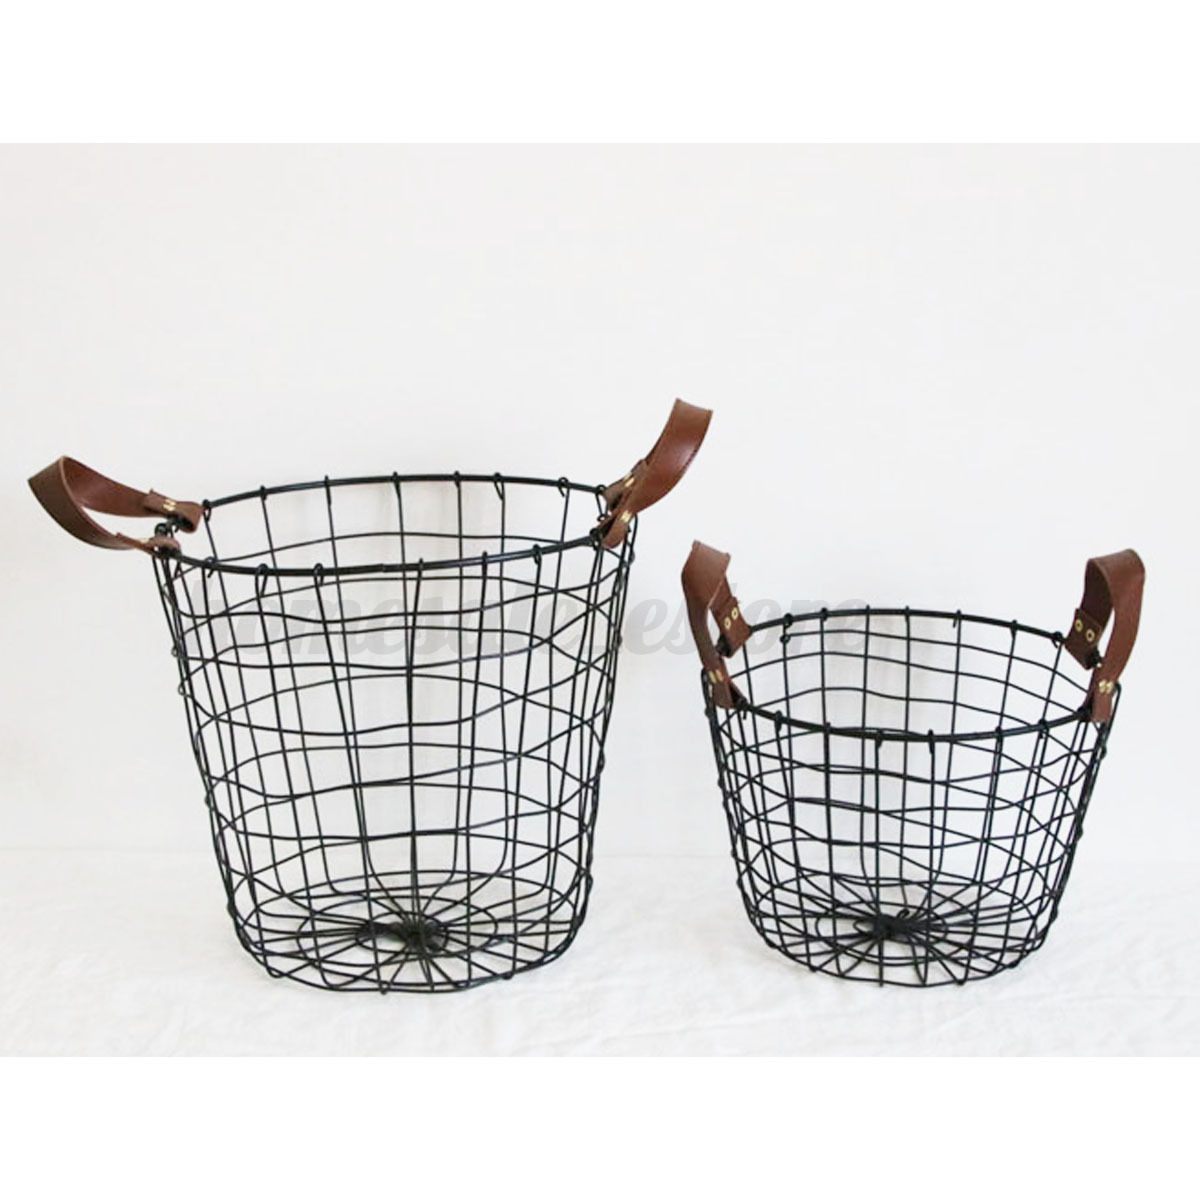 Decorative Metal Waste Baskets Metal Wire Iron Basket Magazine Post Stairs Storage Crate